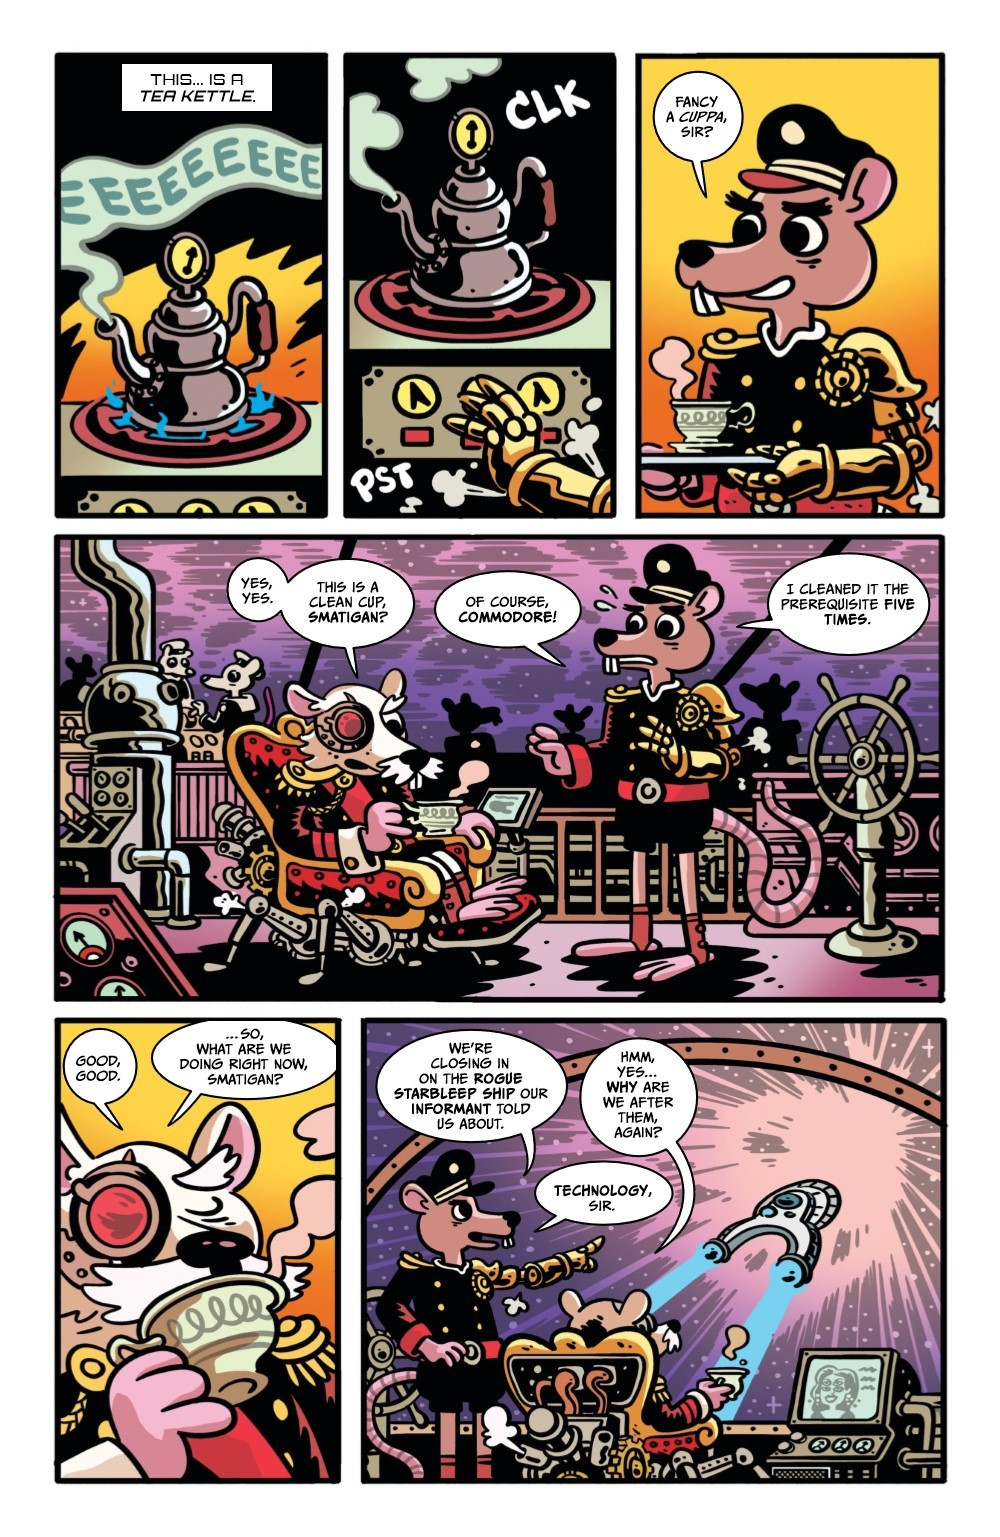 ORCSINSPACE-3-REFERENCE-05 ComicList Previews: ORCS IN SPACE #3